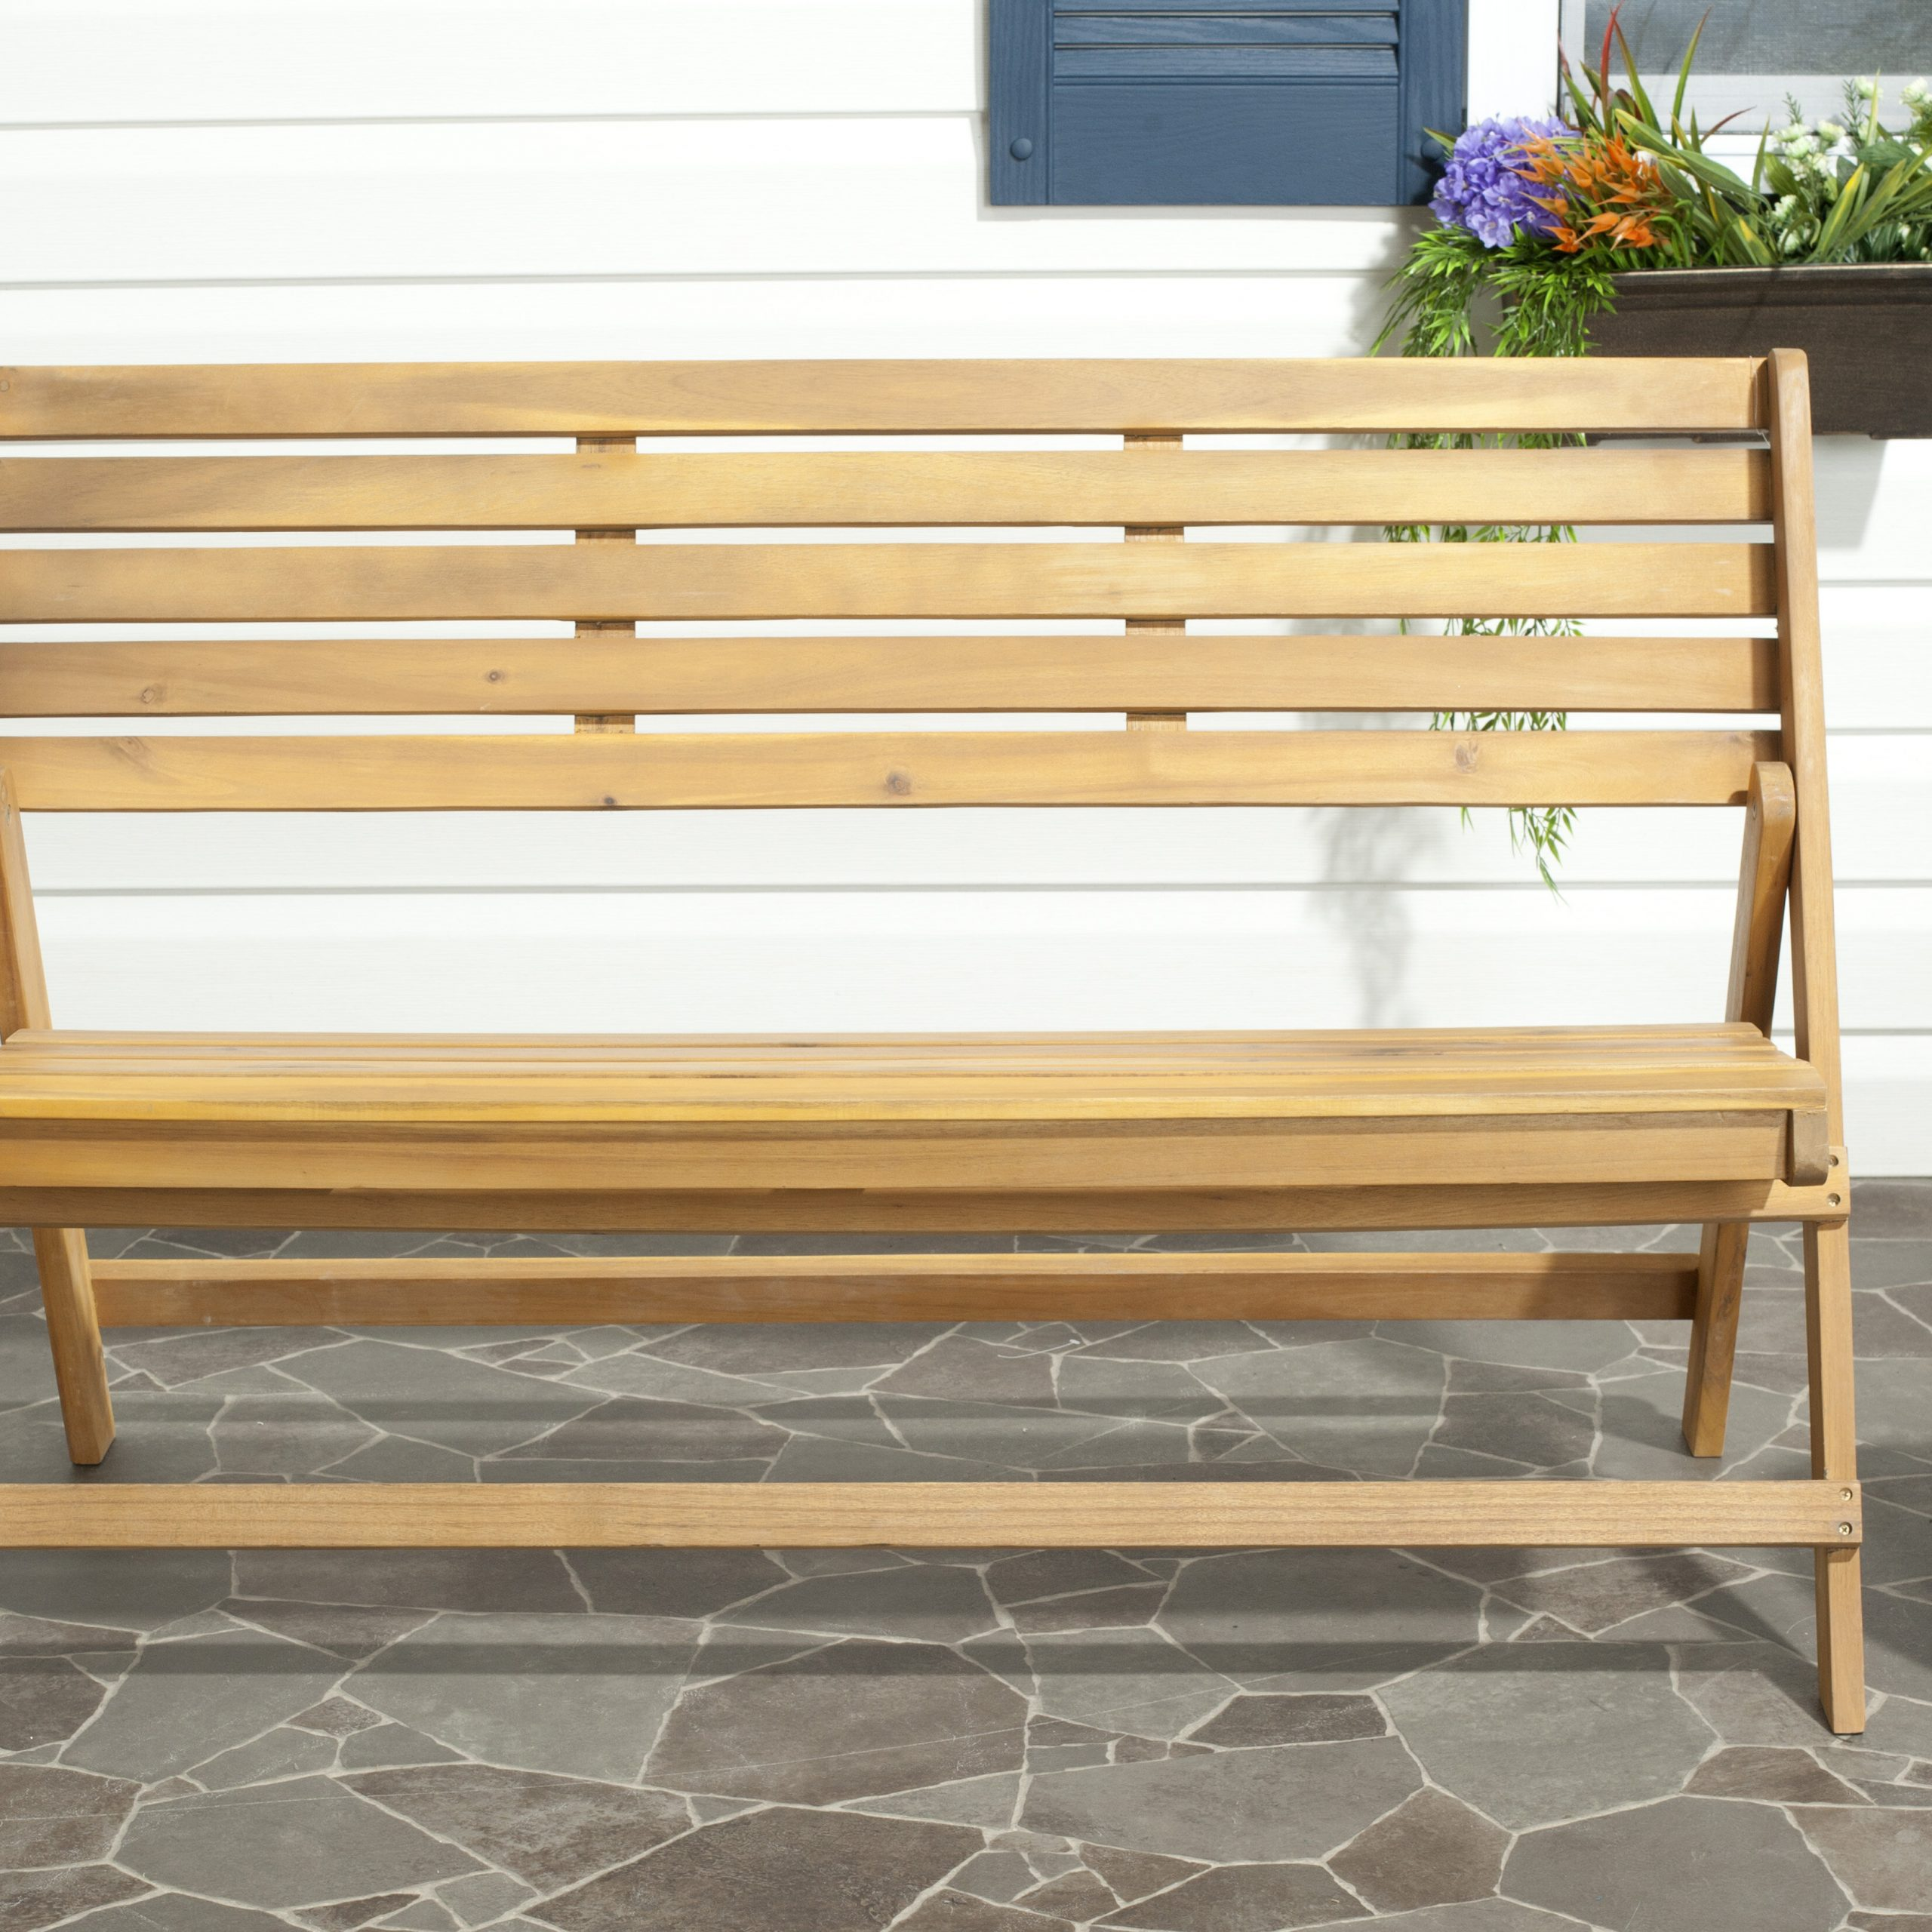 Latest One Allium Way Mignardise Wooden Garden Bench Pertaining To Guyapi Garden Benches (View 13 of 30)